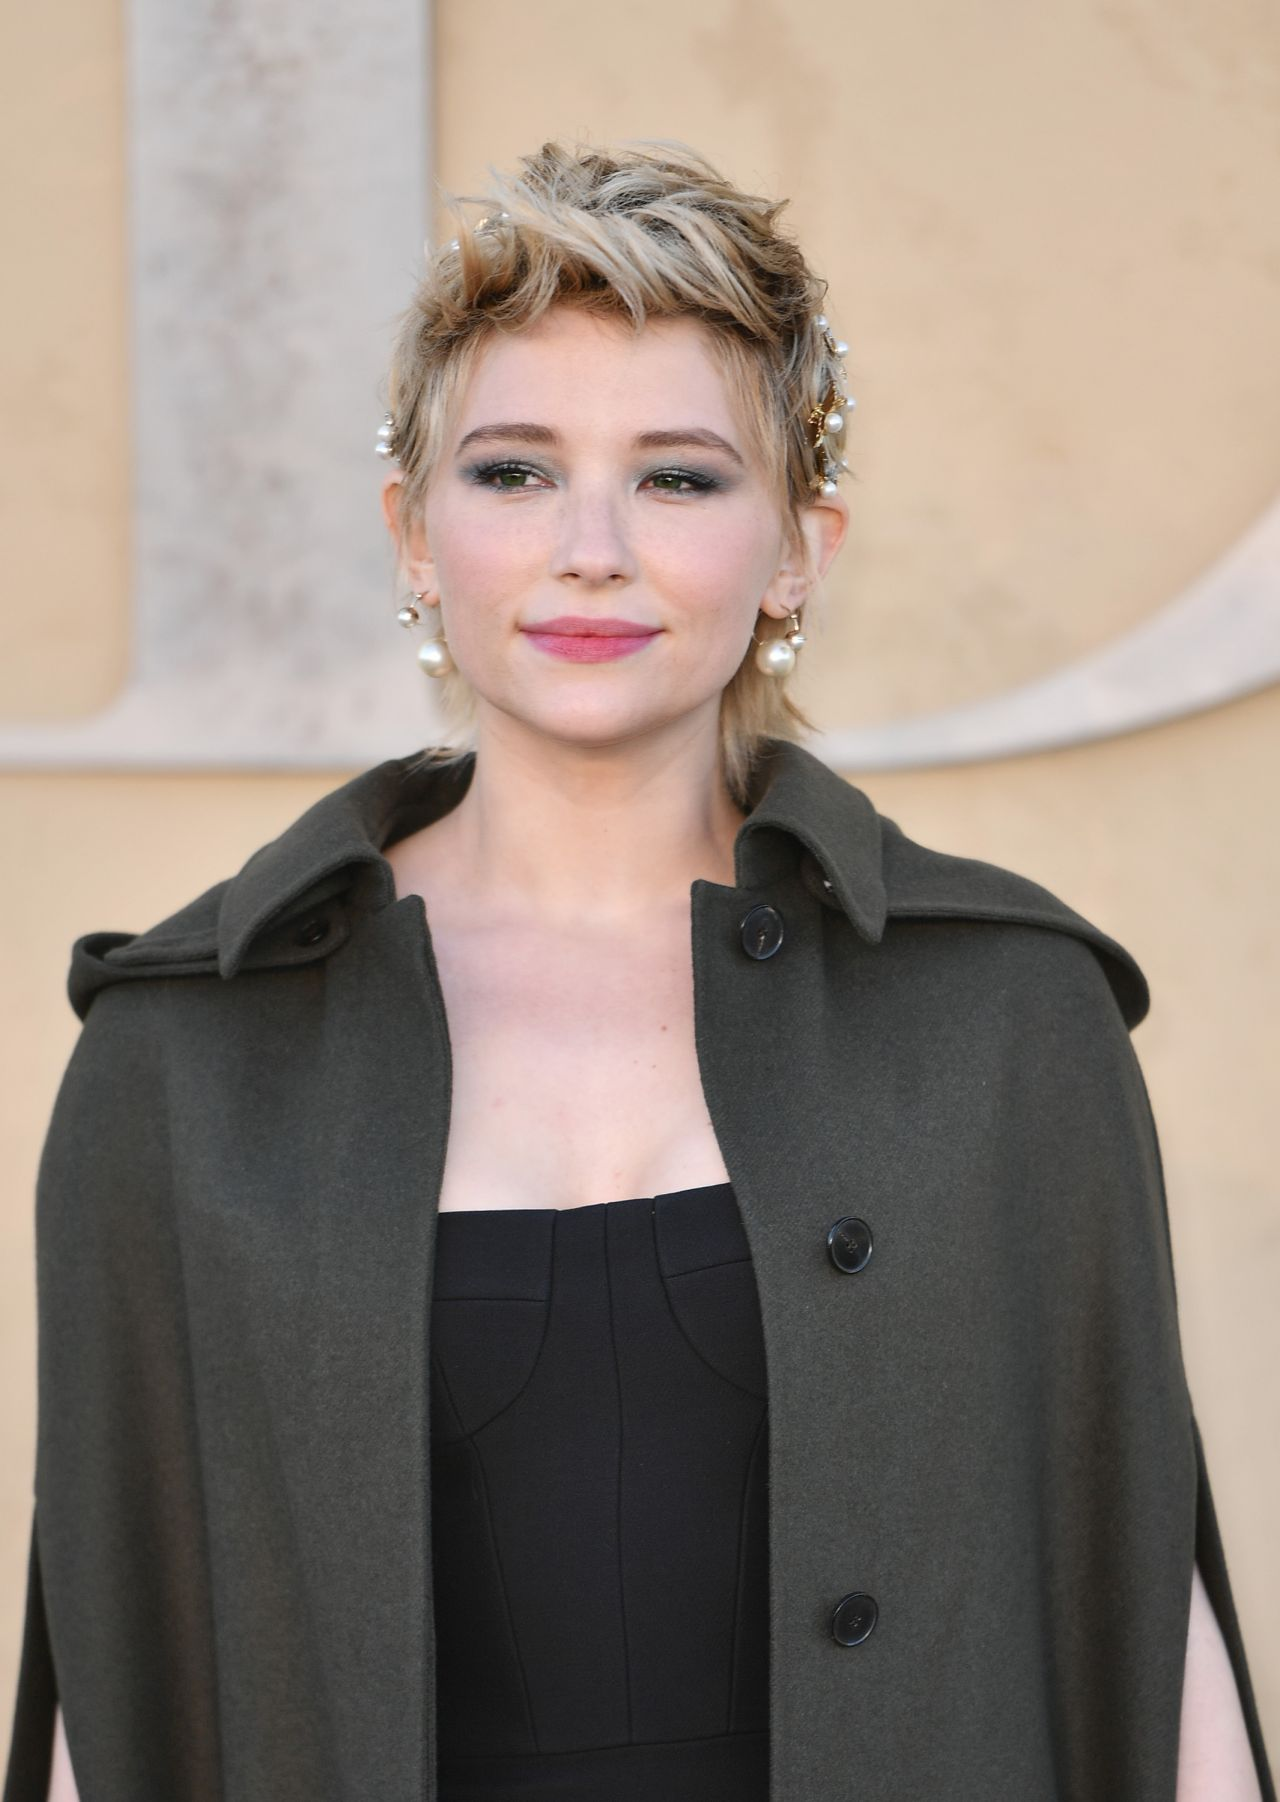 Haley Bennett Dior Cruise Collection 2018 In La 05 11 2017